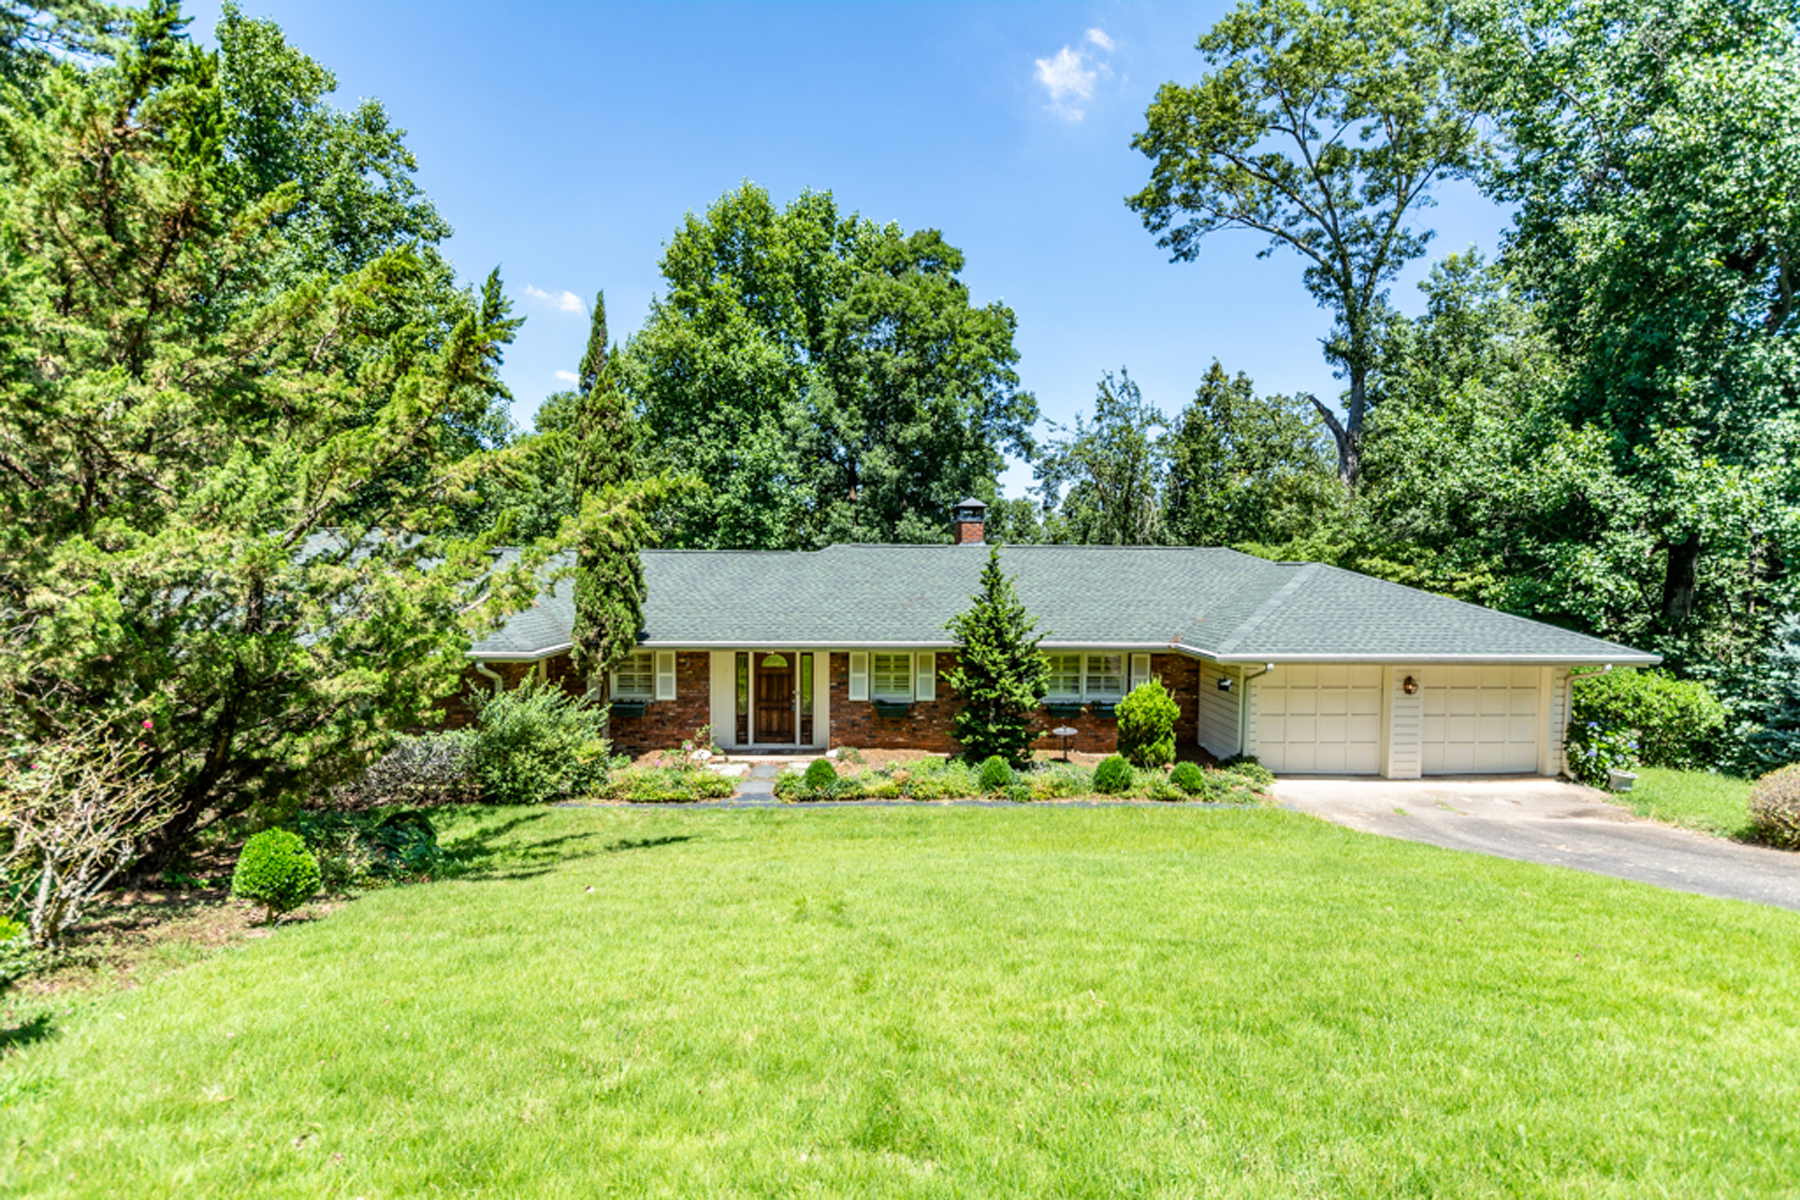 Single Family Home for Sale at Ready For Renovation Or Tear Down Nestled Among Multi-Million Dollar Estates 5080 Riverview Road Sandy Springs, Georgia 30327 United States